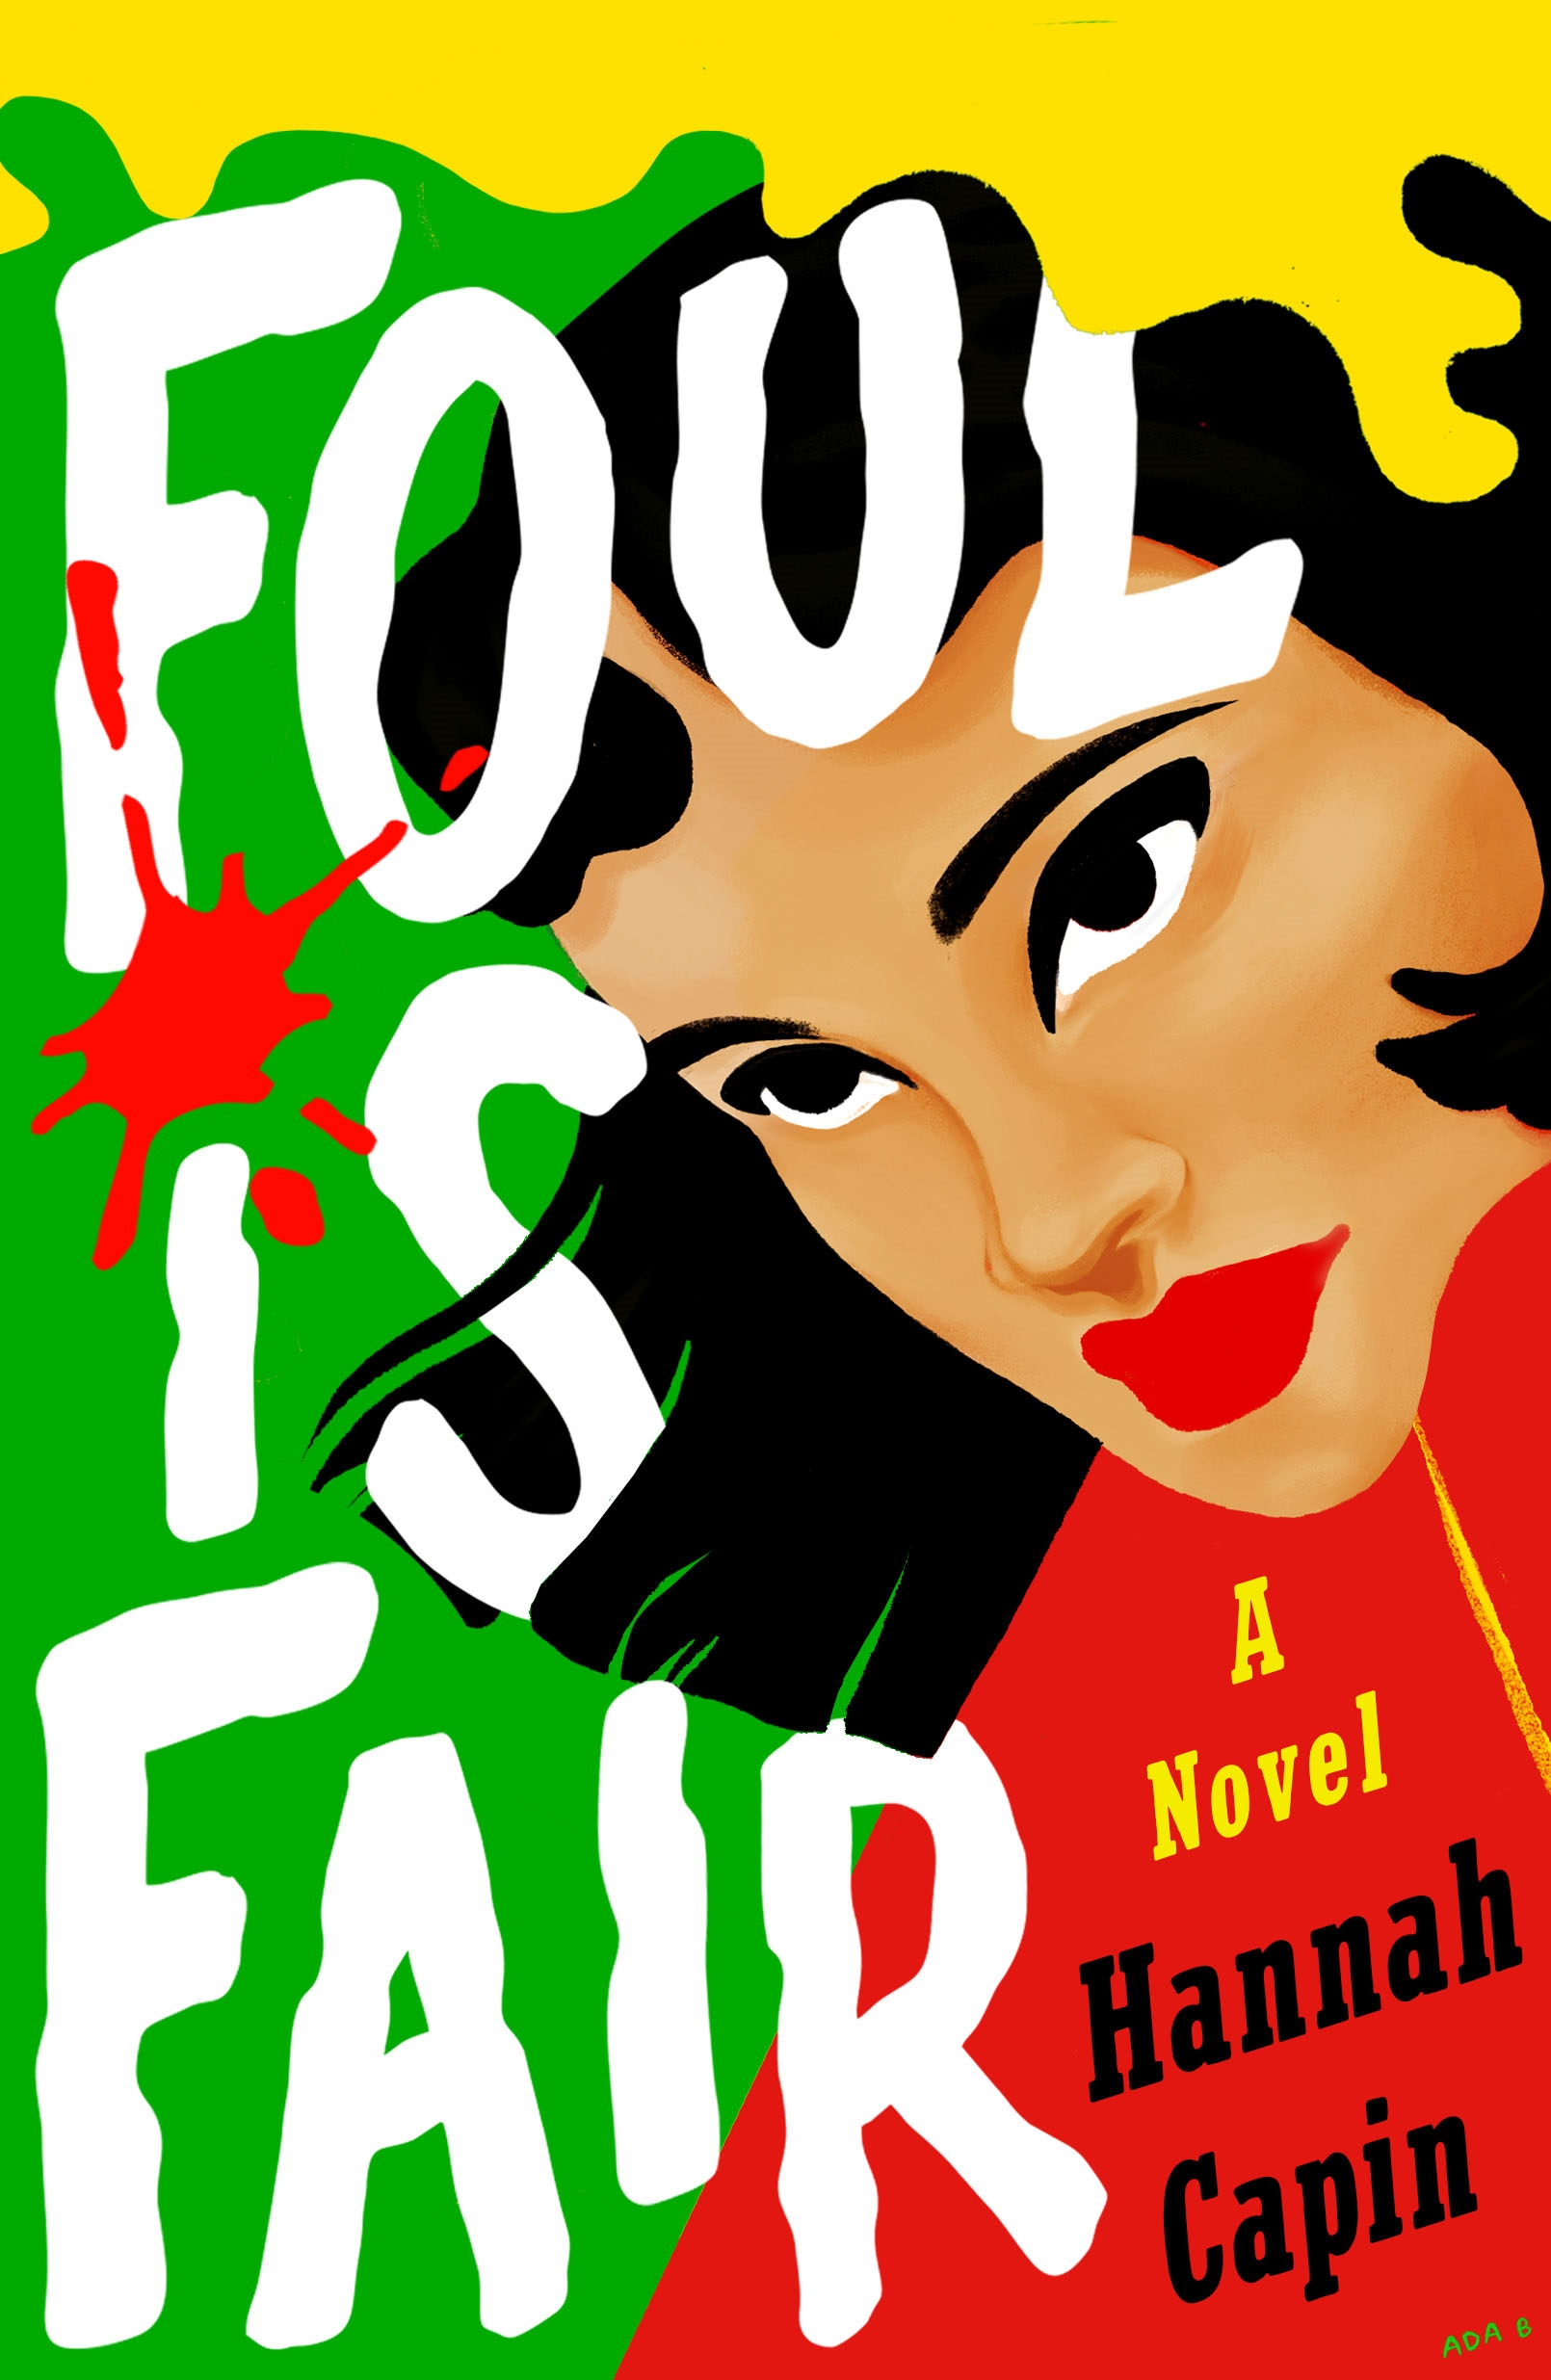 Blog Tour & Review: Foul Is Fair by Hannah Capin